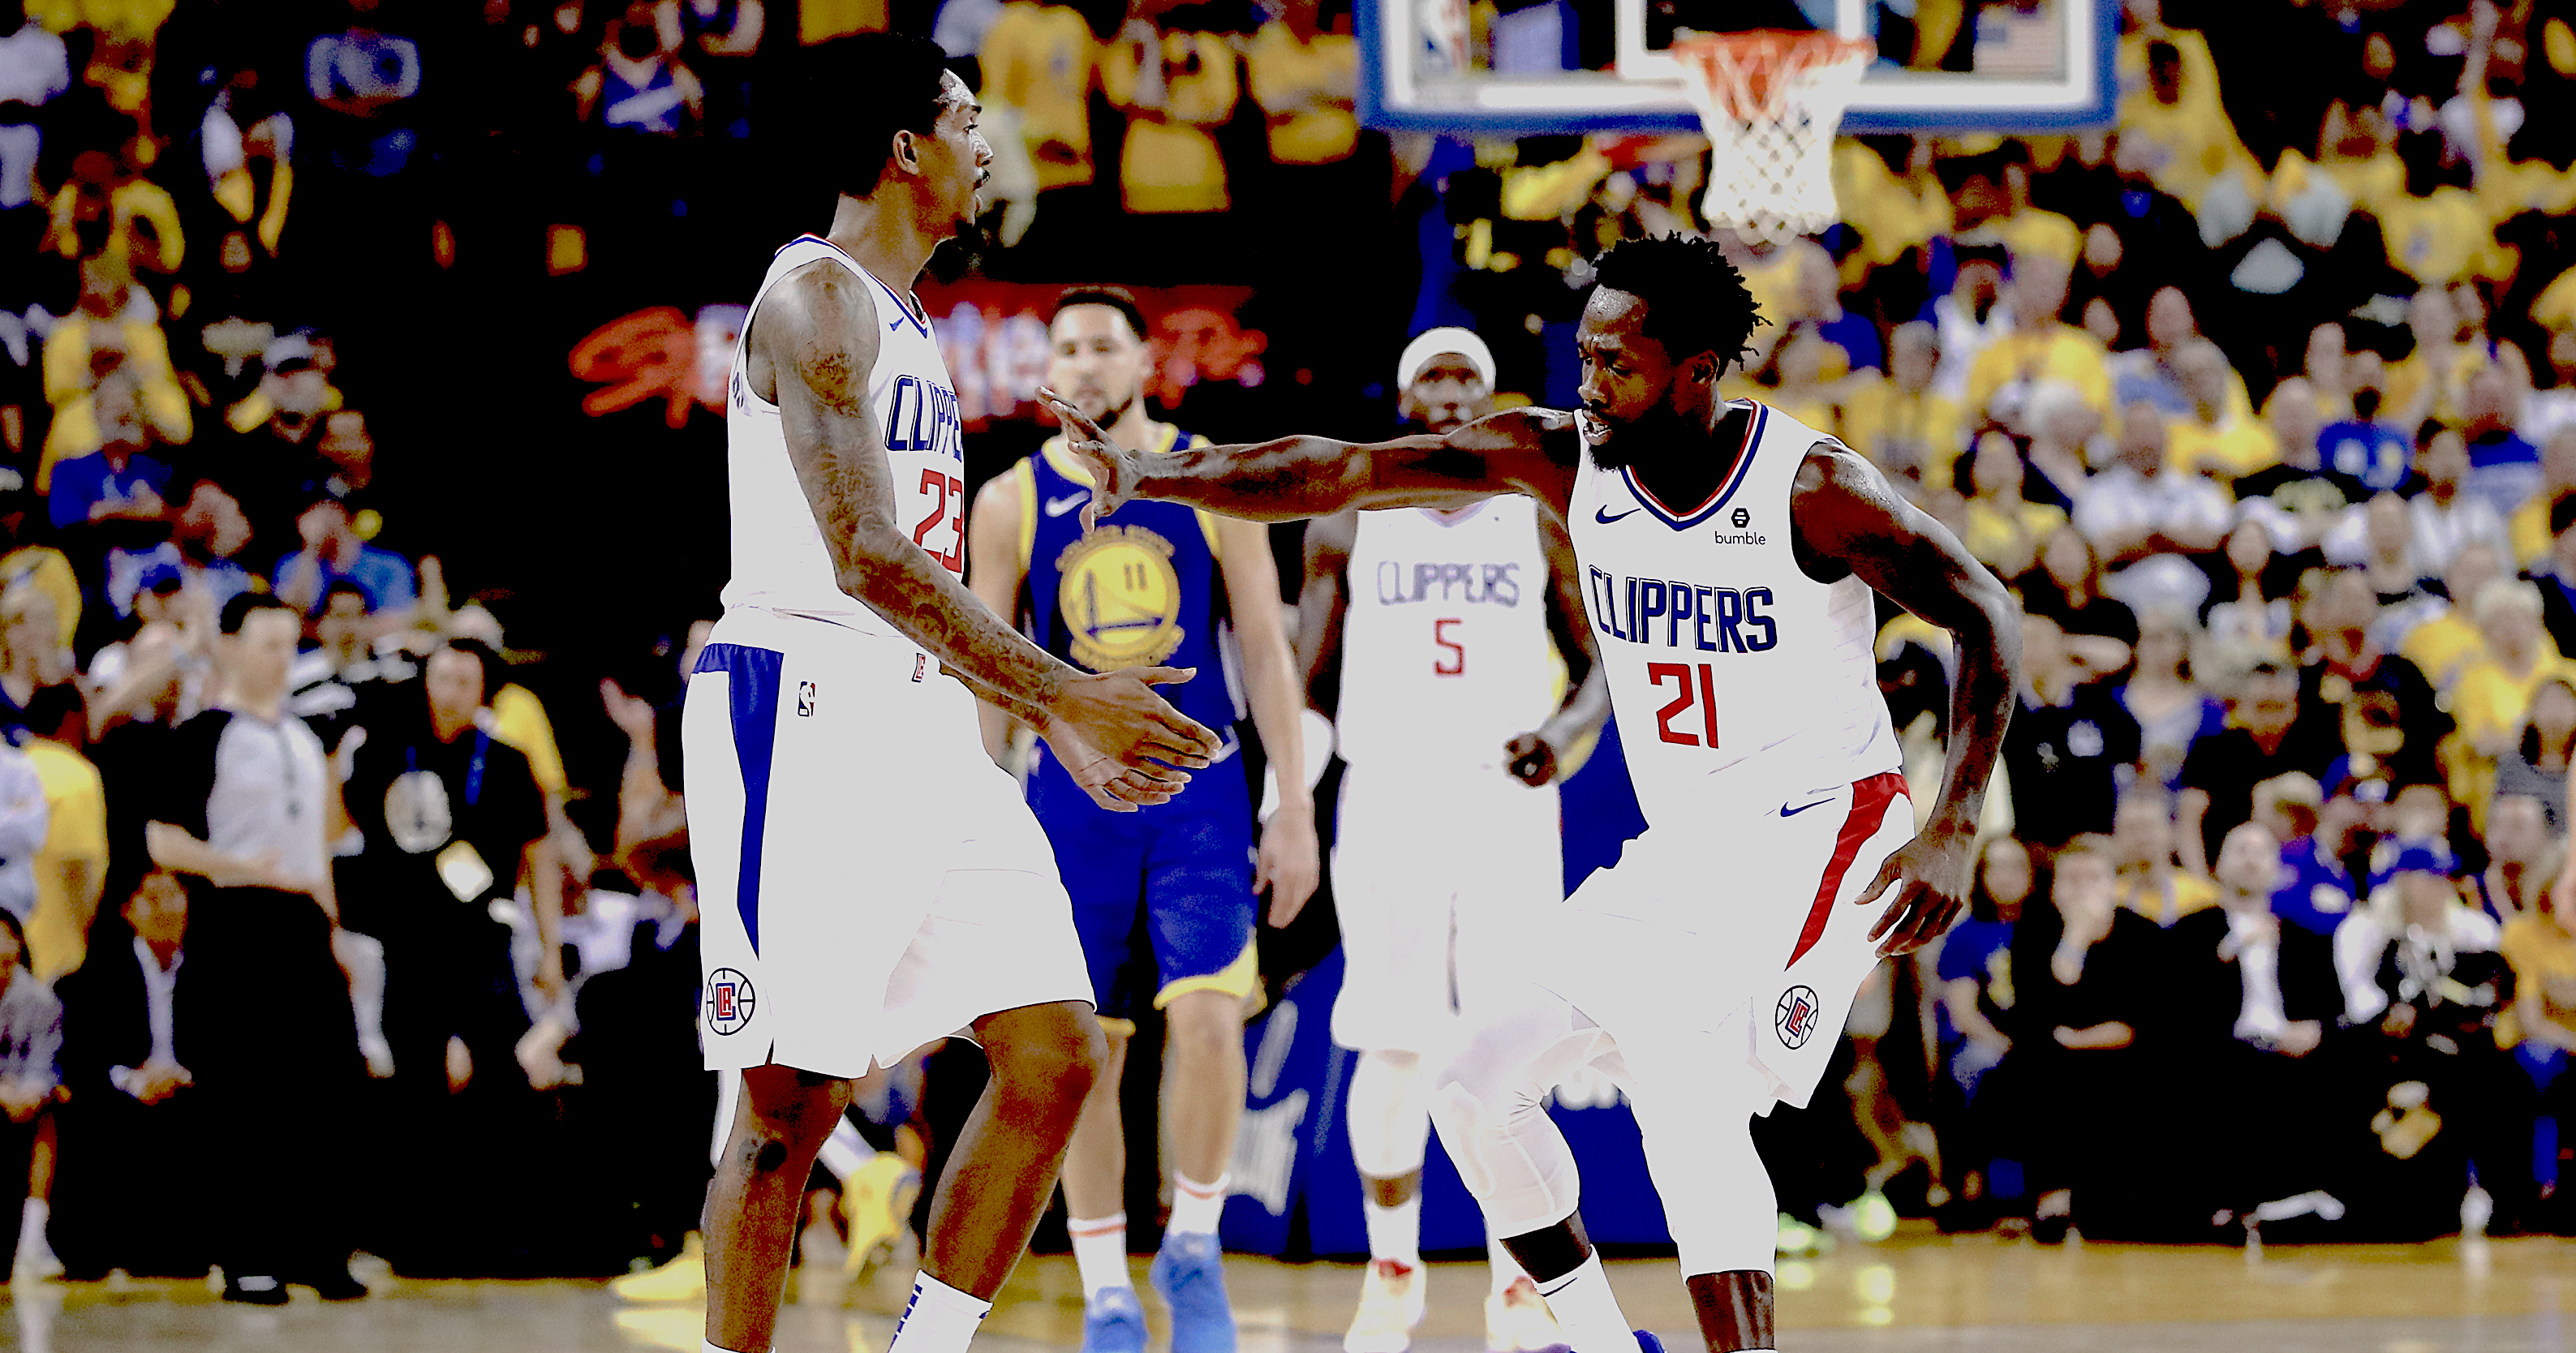 Clippers up the Intensity, force game 6 - Basketball Index